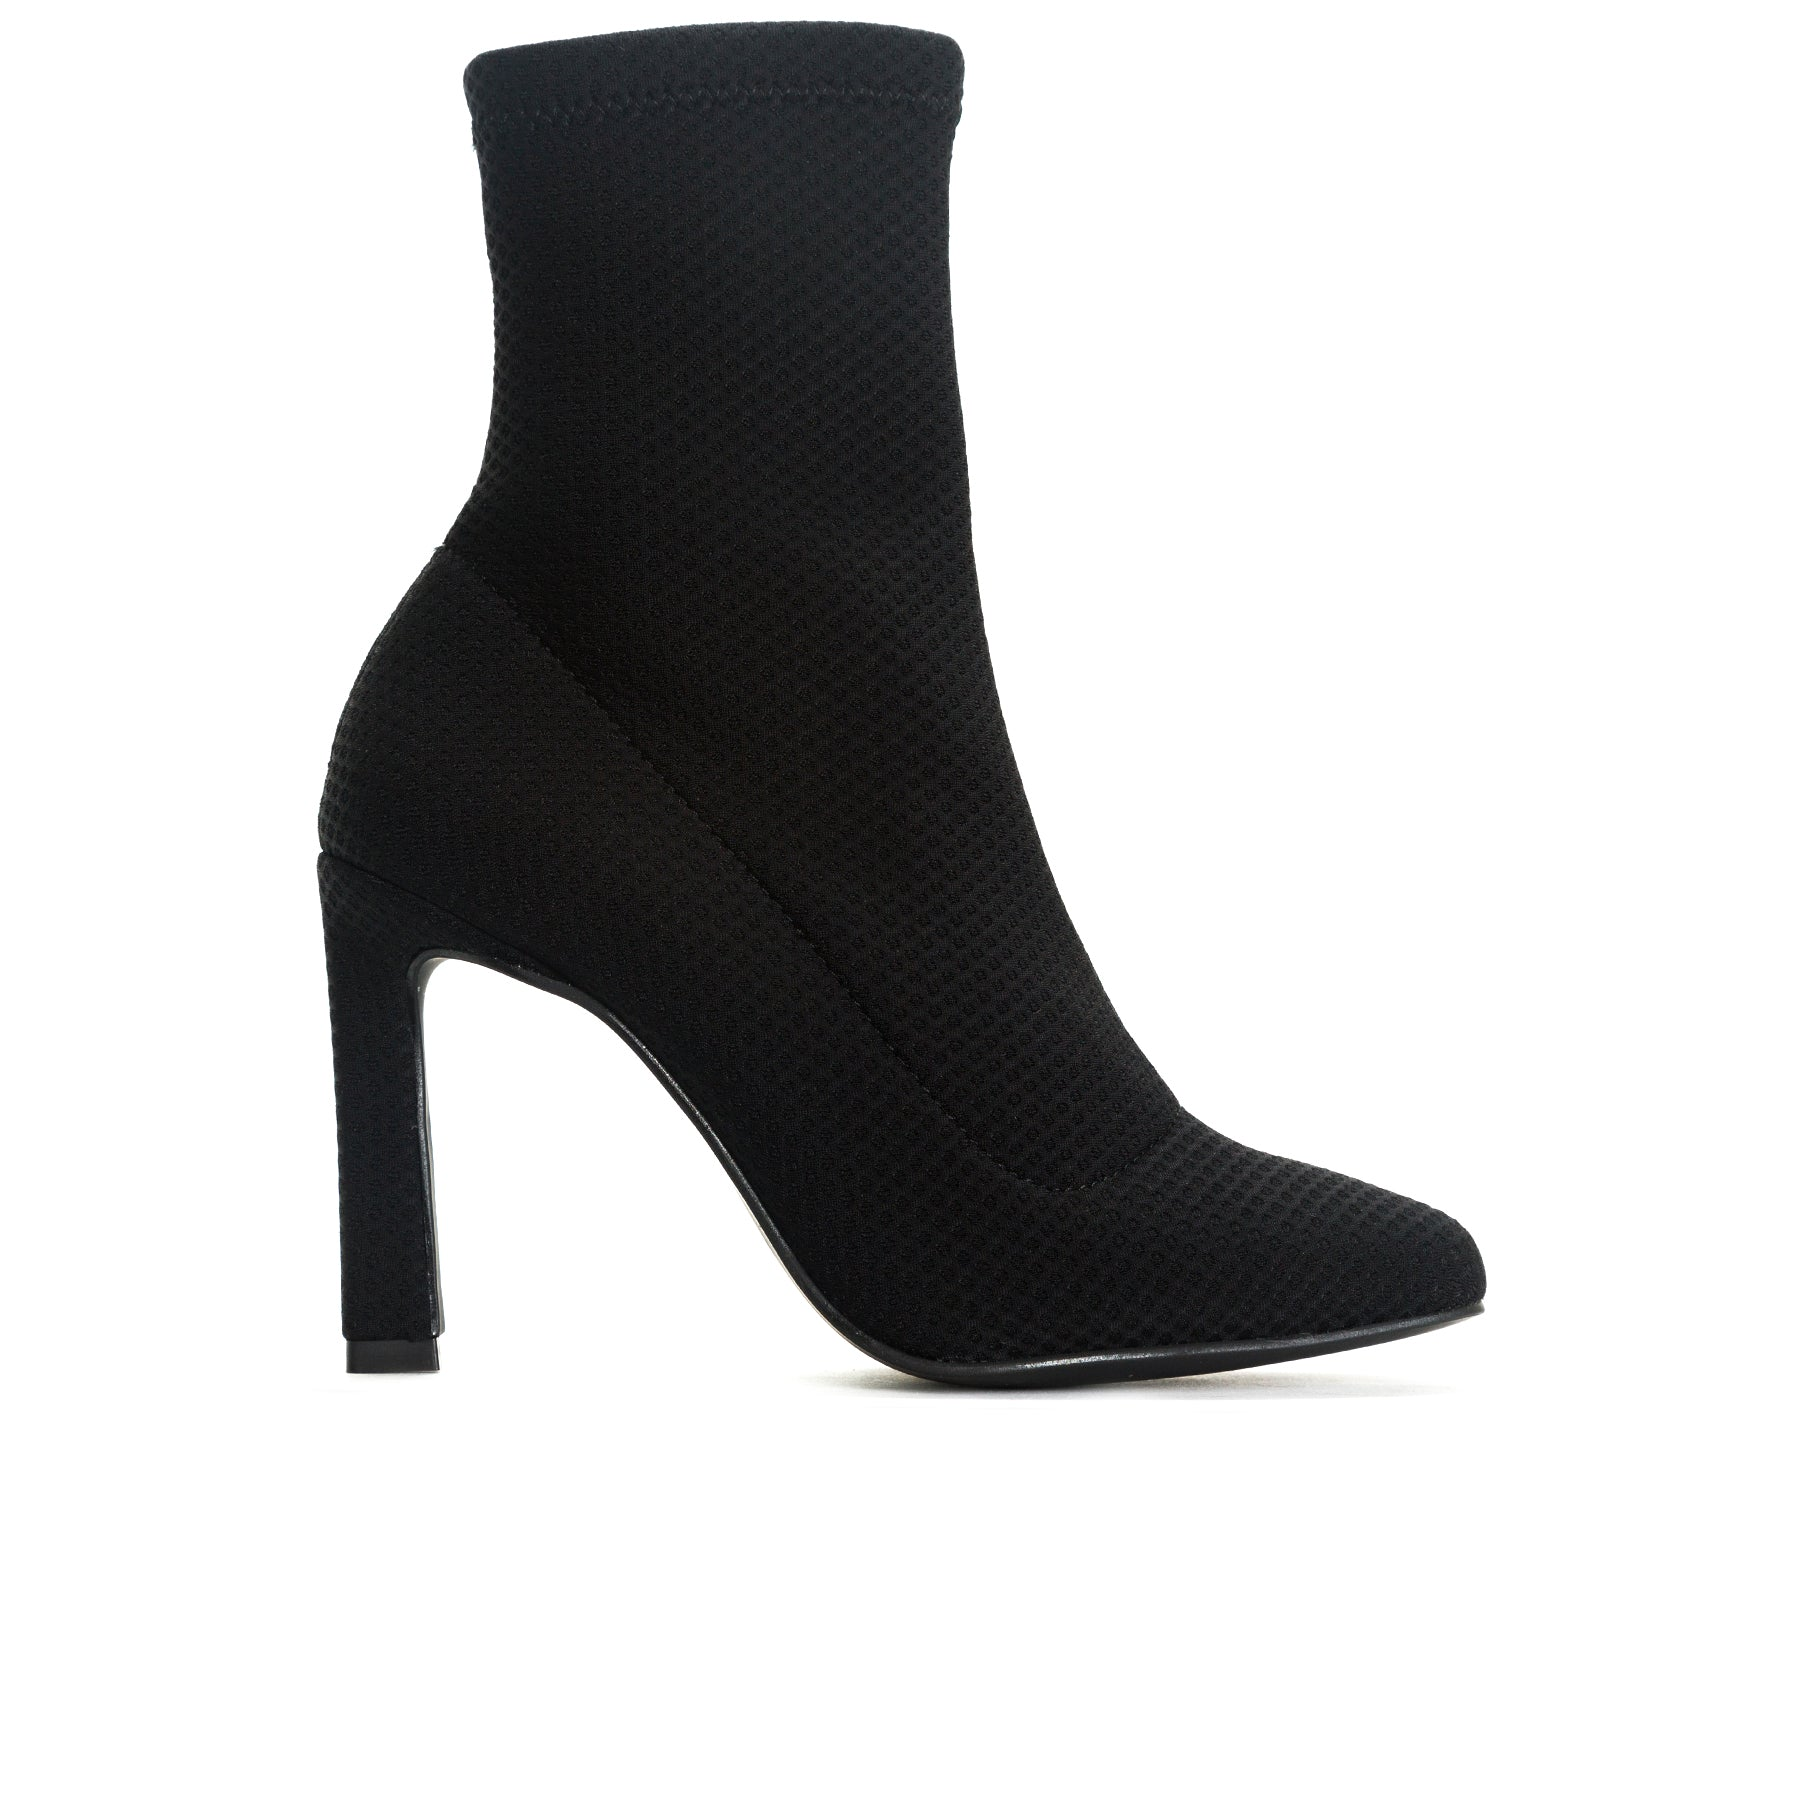 Dafni Black Fabric Booties